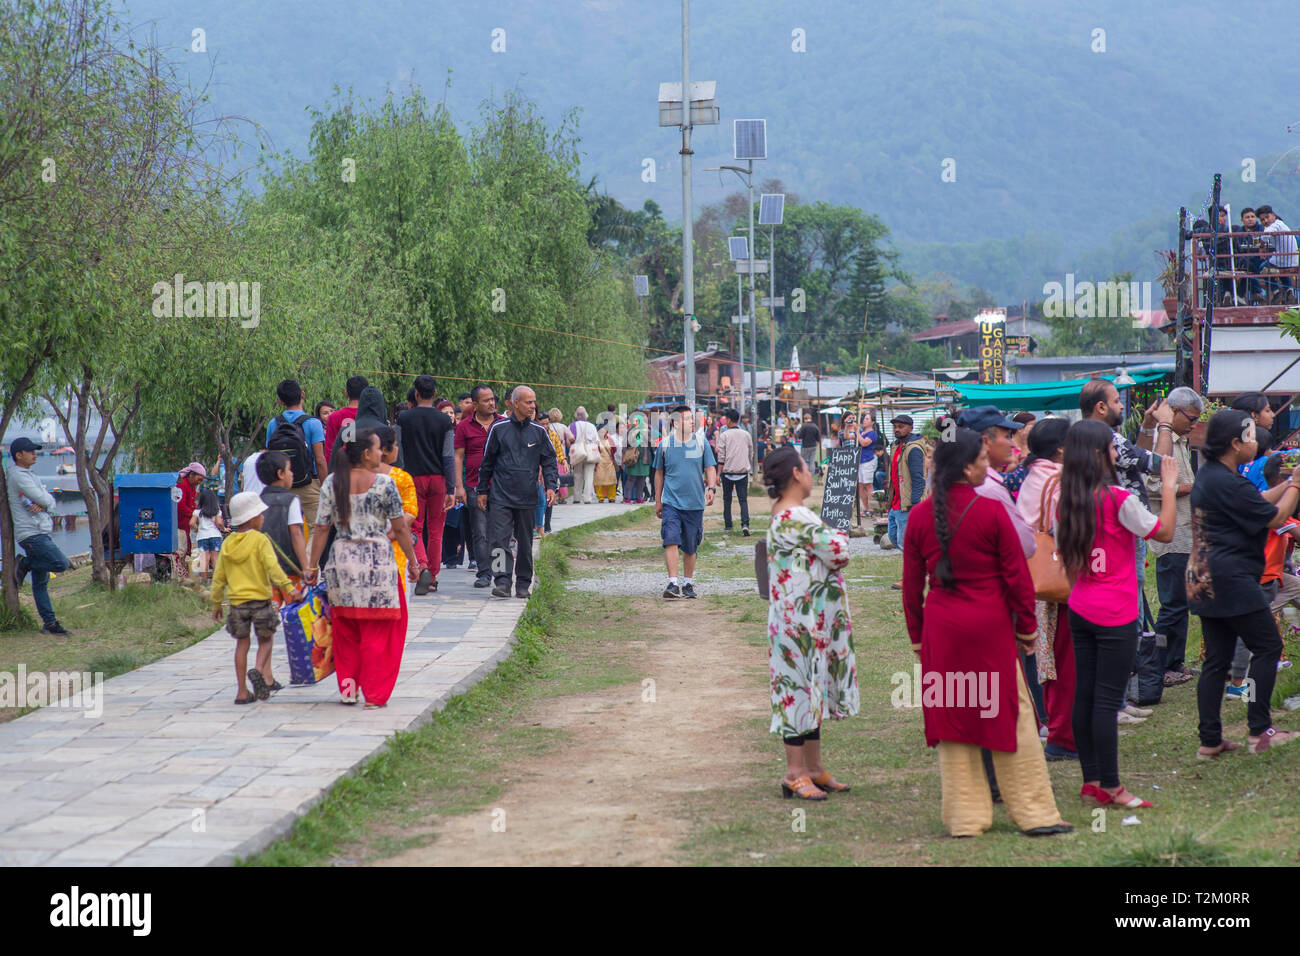 People walking along the lake in Pokhara, Nepal, on a foggy afternoon - Stock Image